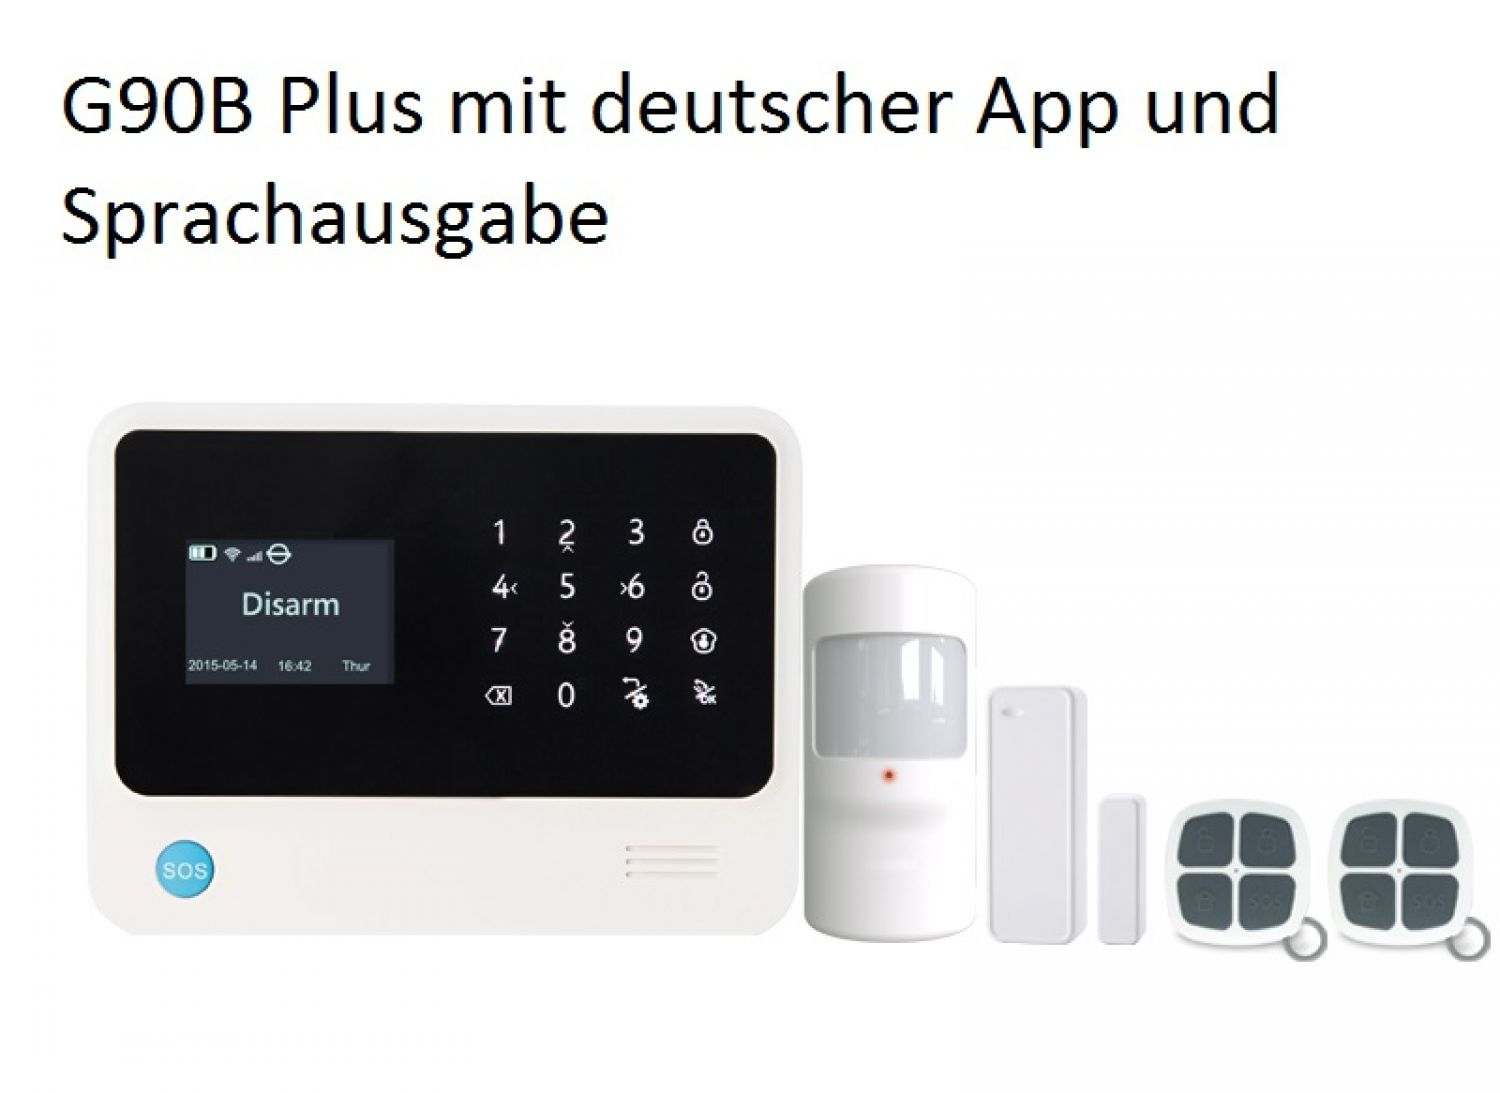 wifi gsm haus alarmanlage sicherheitssystem mit lcd anzeige app in deutsch ebay. Black Bedroom Furniture Sets. Home Design Ideas